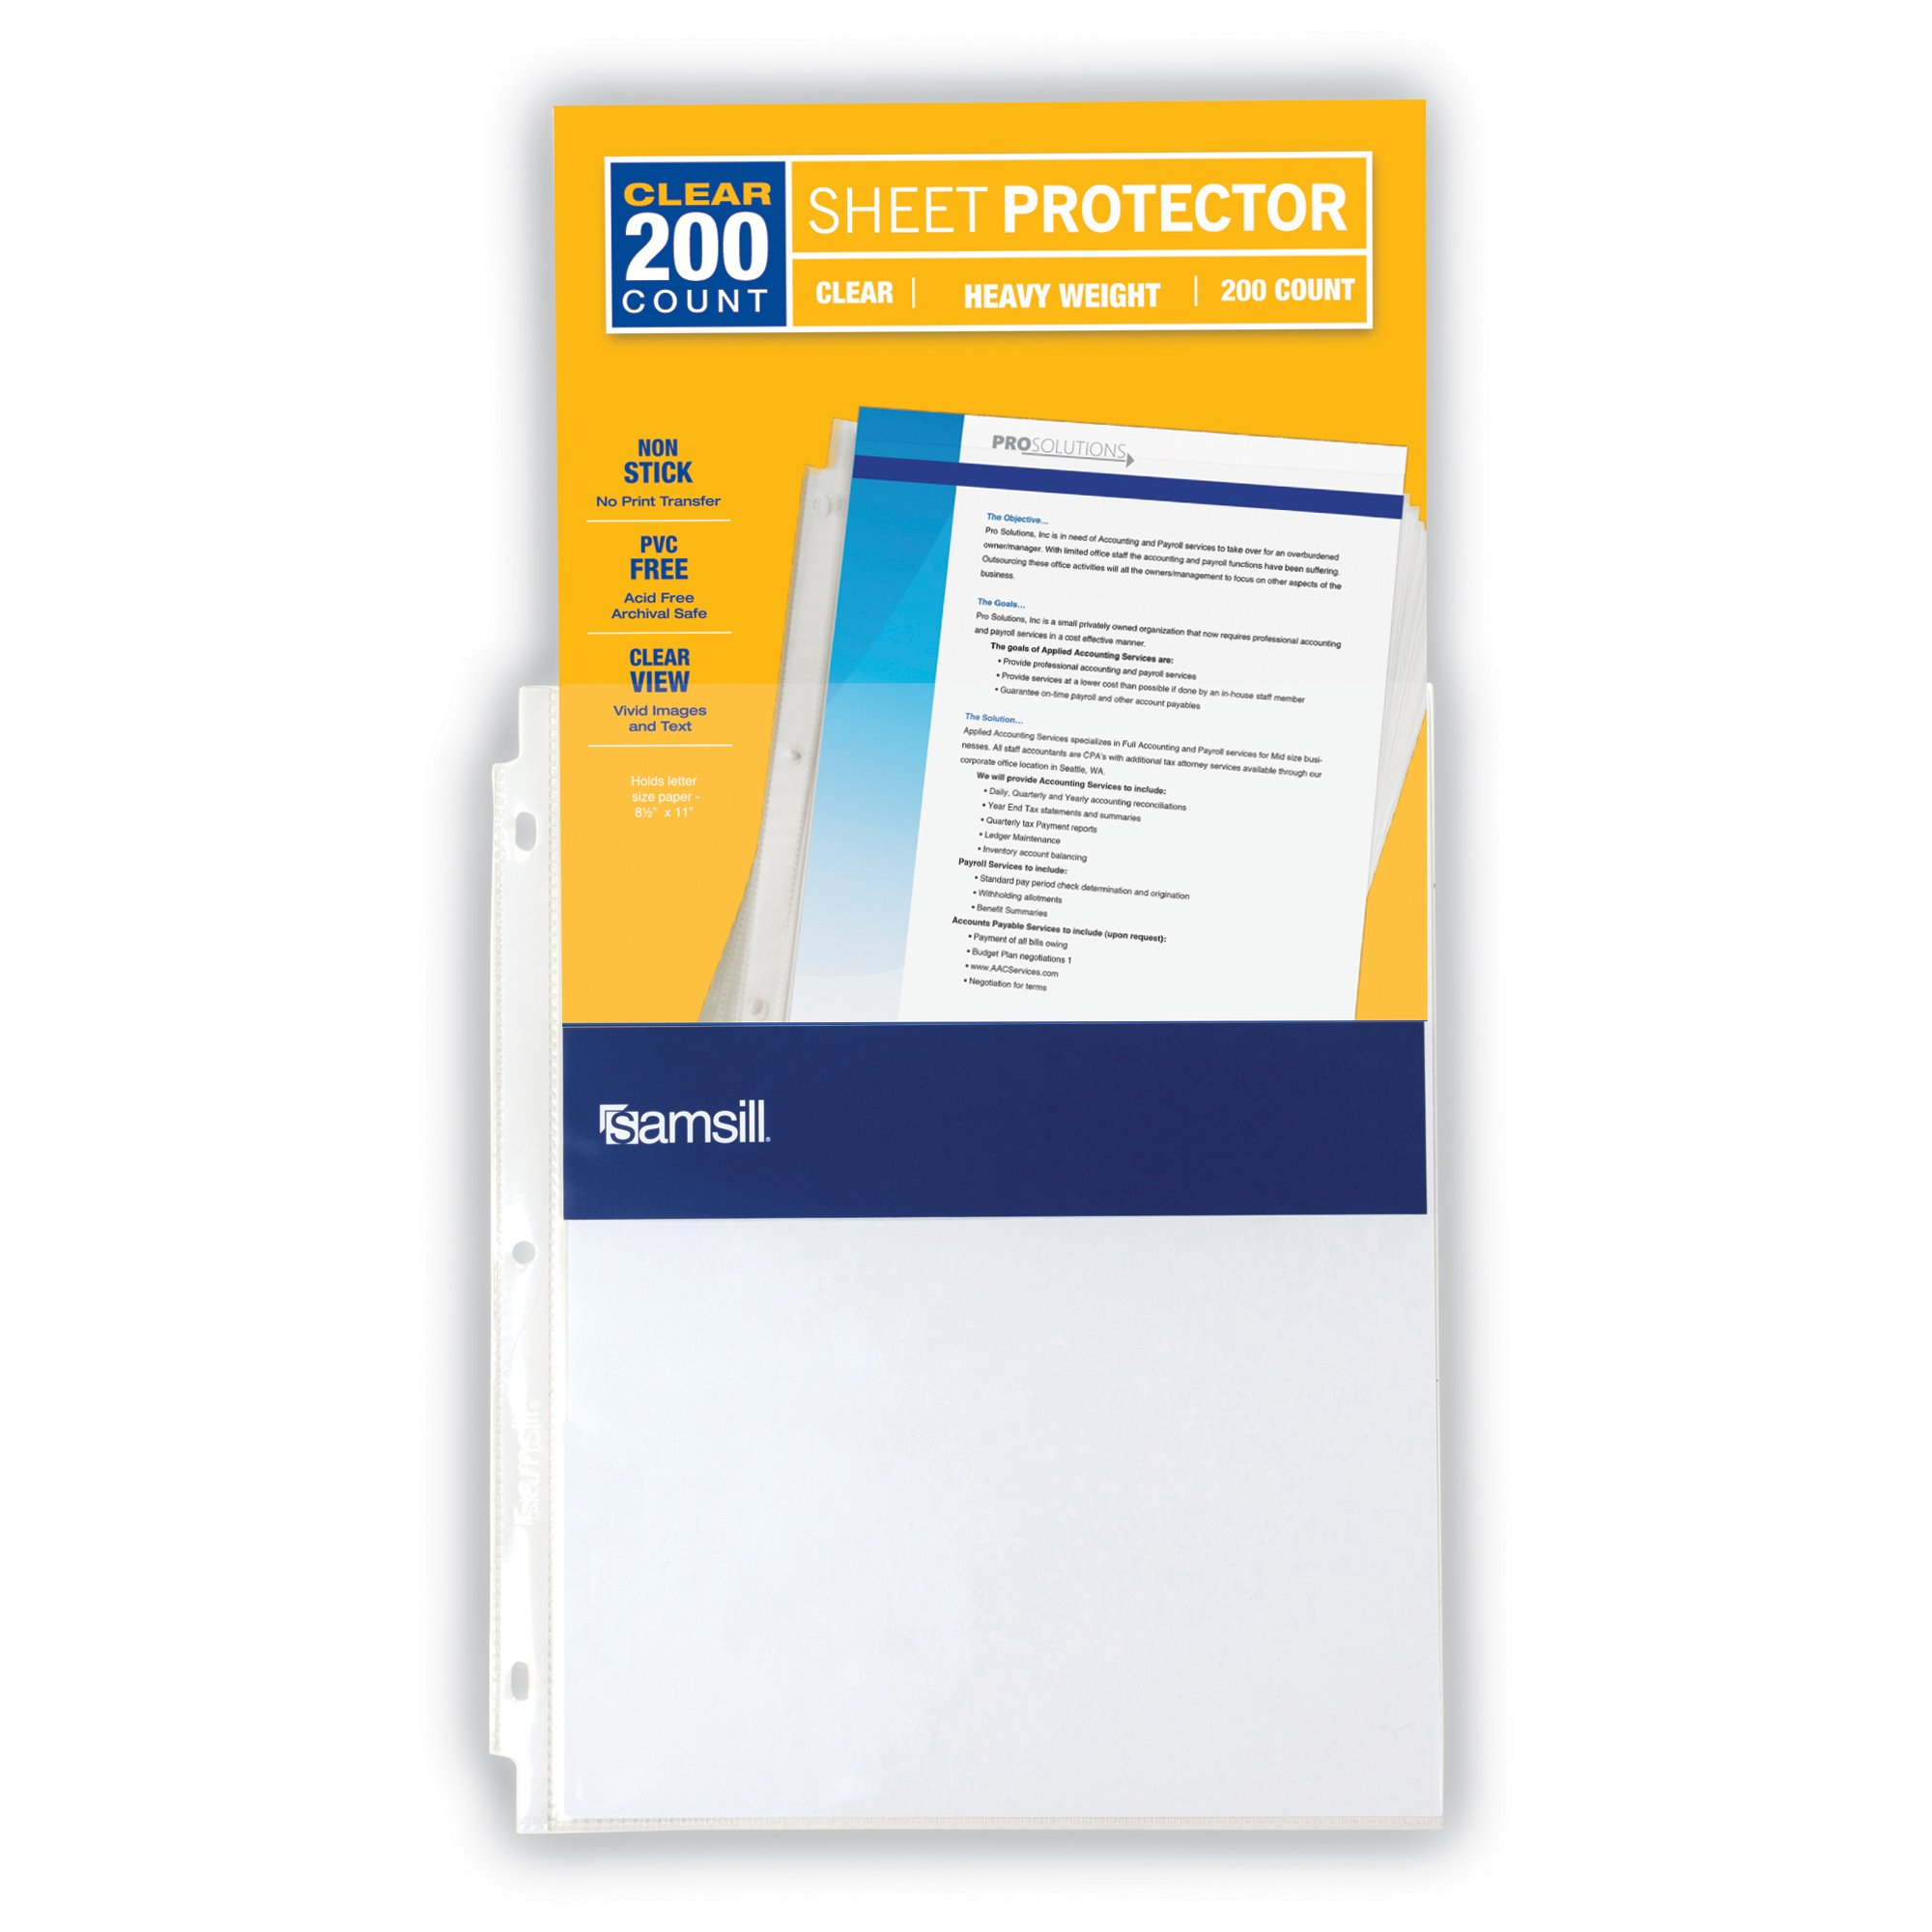 Samsill Heavyweight Clear Sheet Protectors, Box of 200 Plastic Page Protectors, Acid Free/Archival Safe, Top Load 8.5 x 11 inches by Samsill (Image #3)